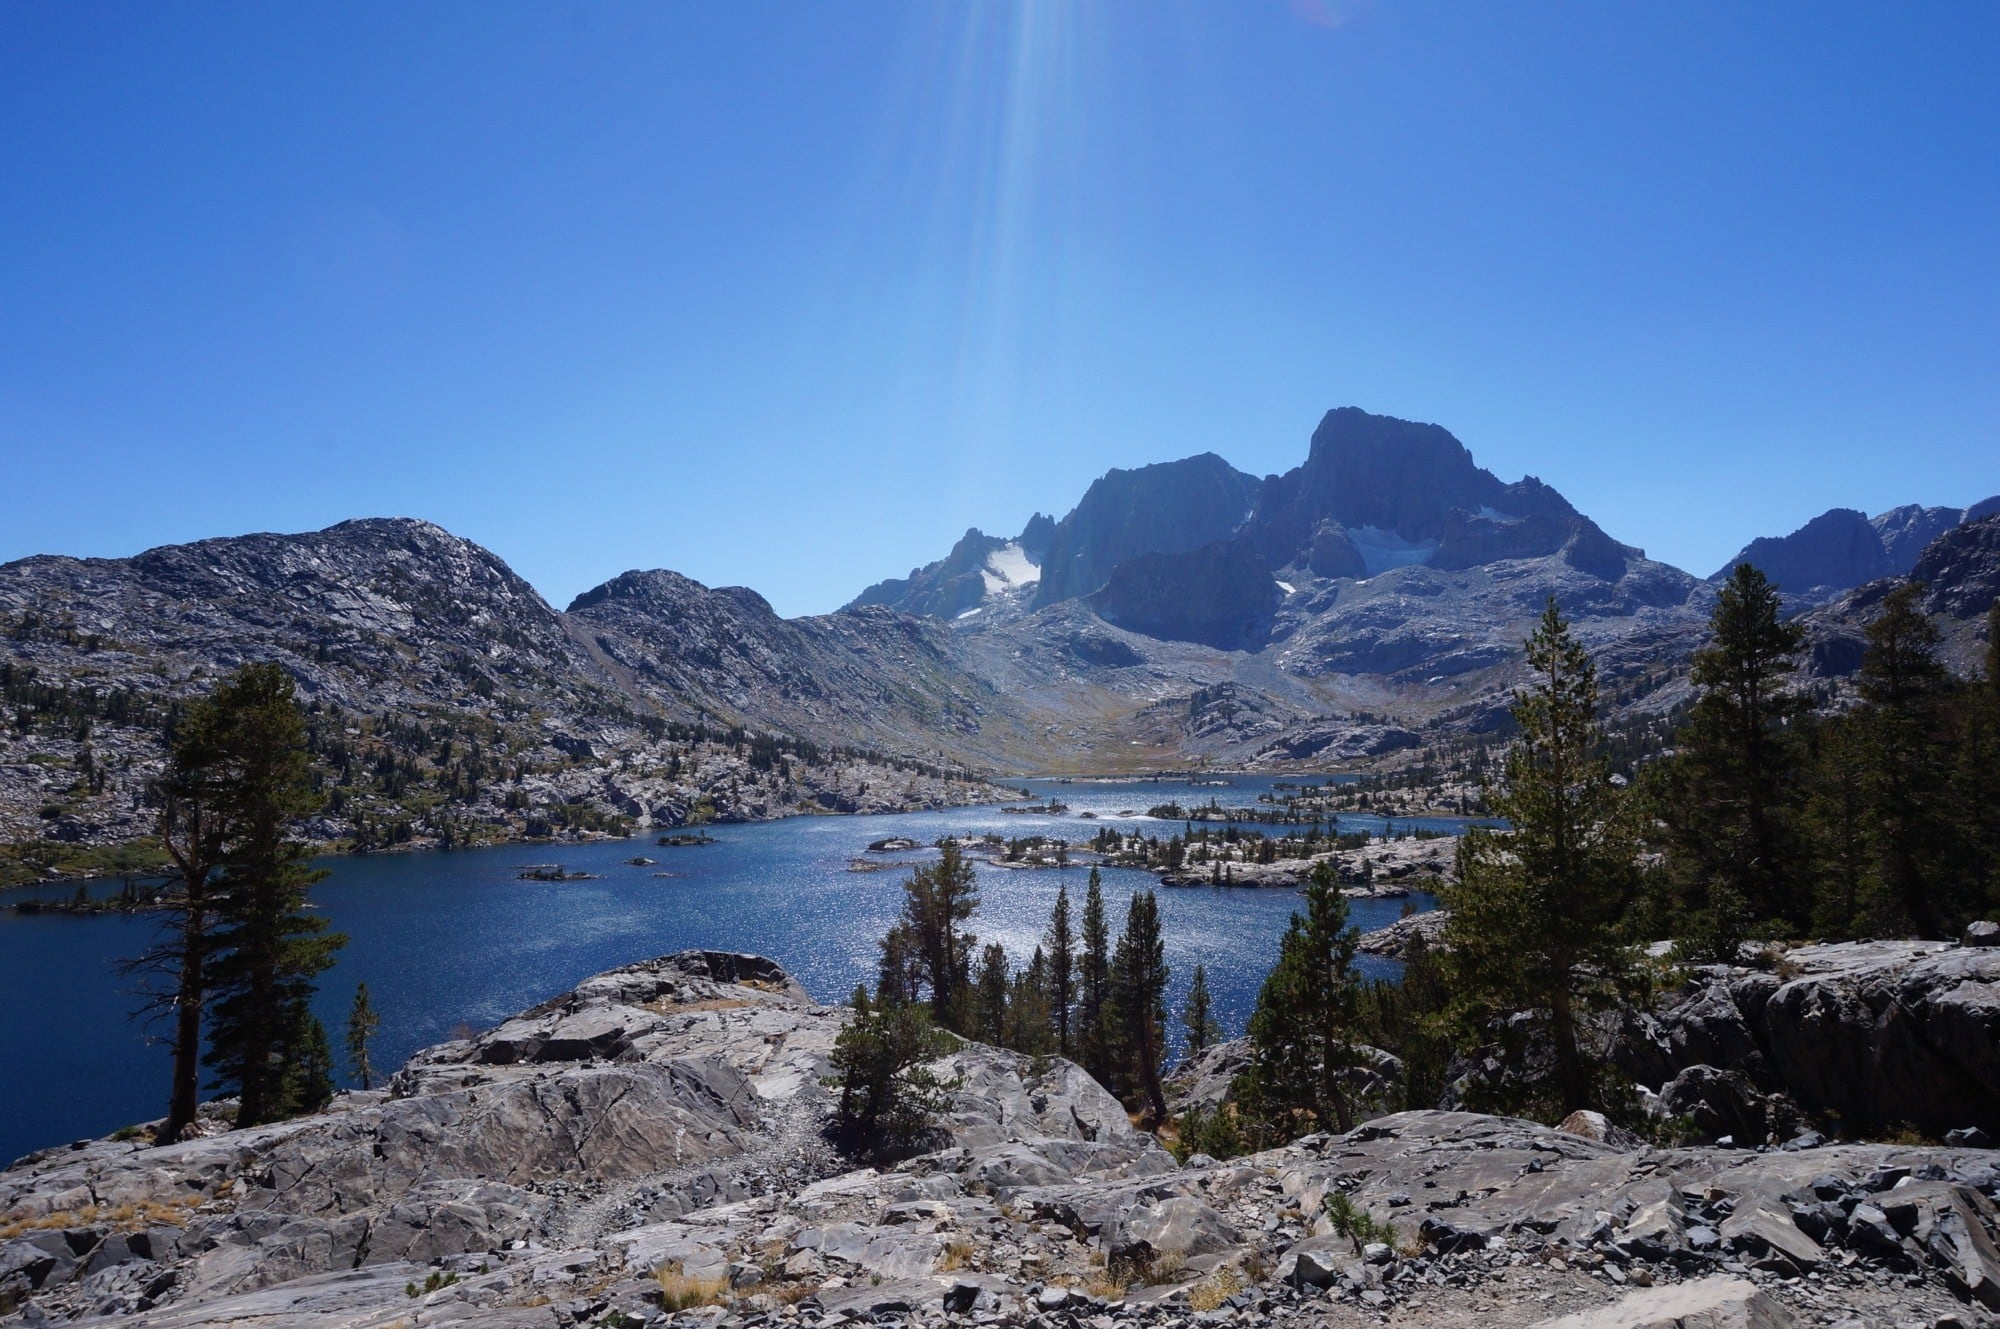 The best section hikes on the John Muir Trail that require less than a week to complete. Our detailed JMT guide helps you plan permits, transportation and more!